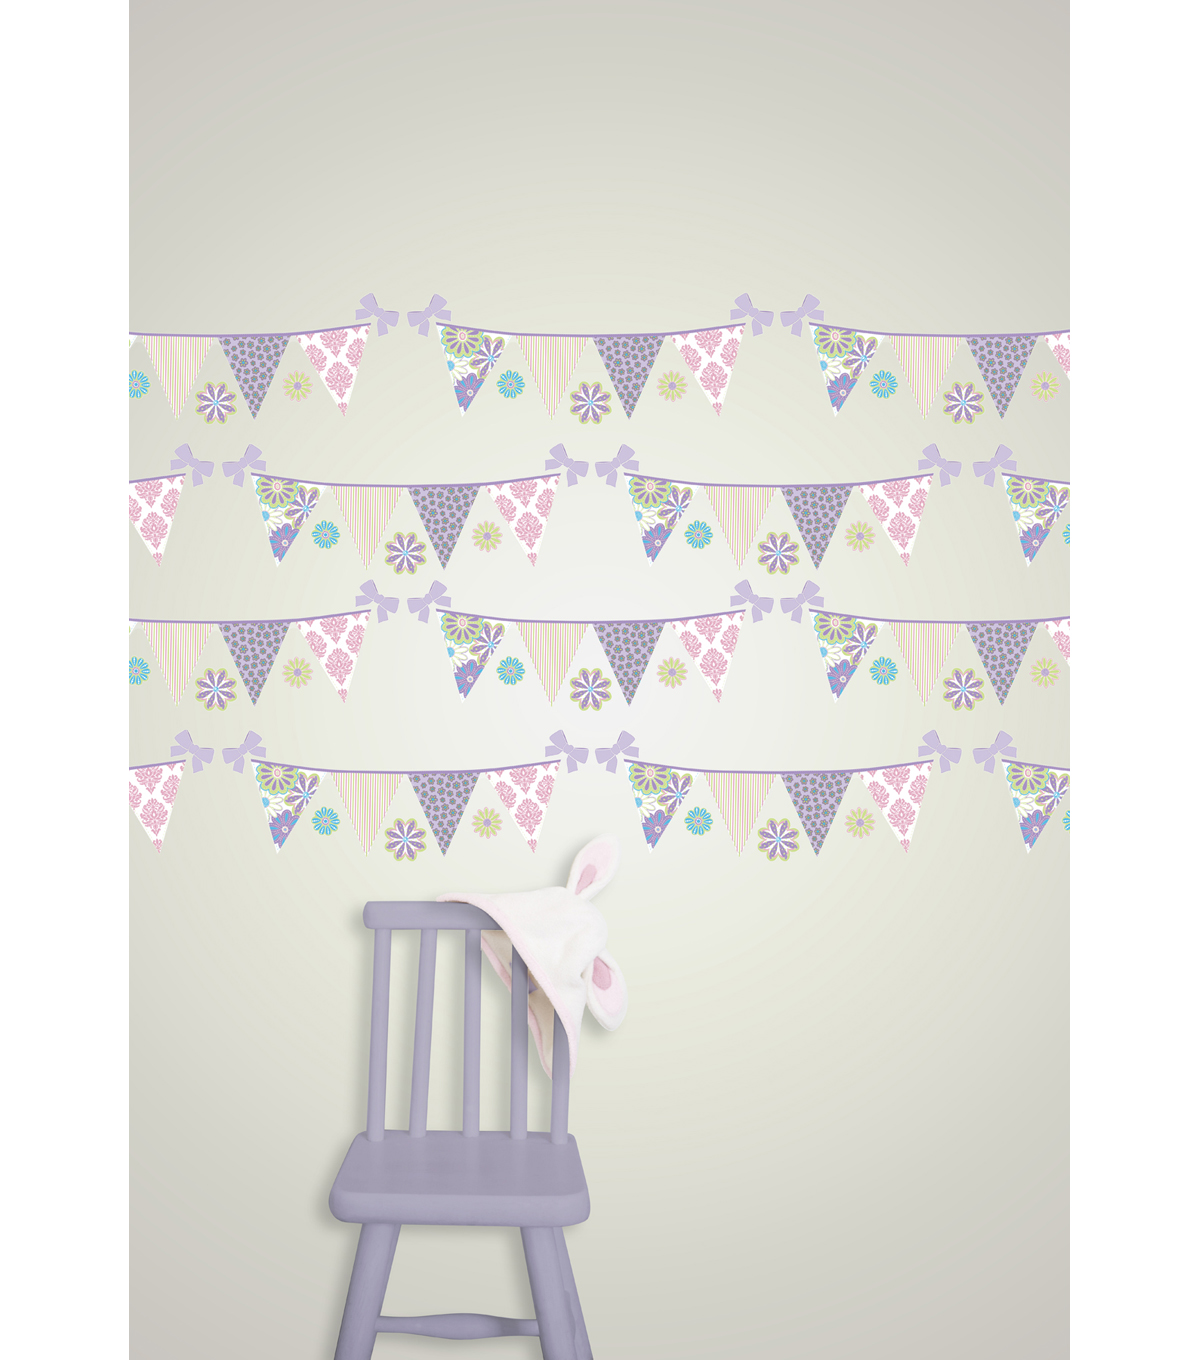 Wall Pops Patchwork Daisy Stripe Decals, 24 Feet